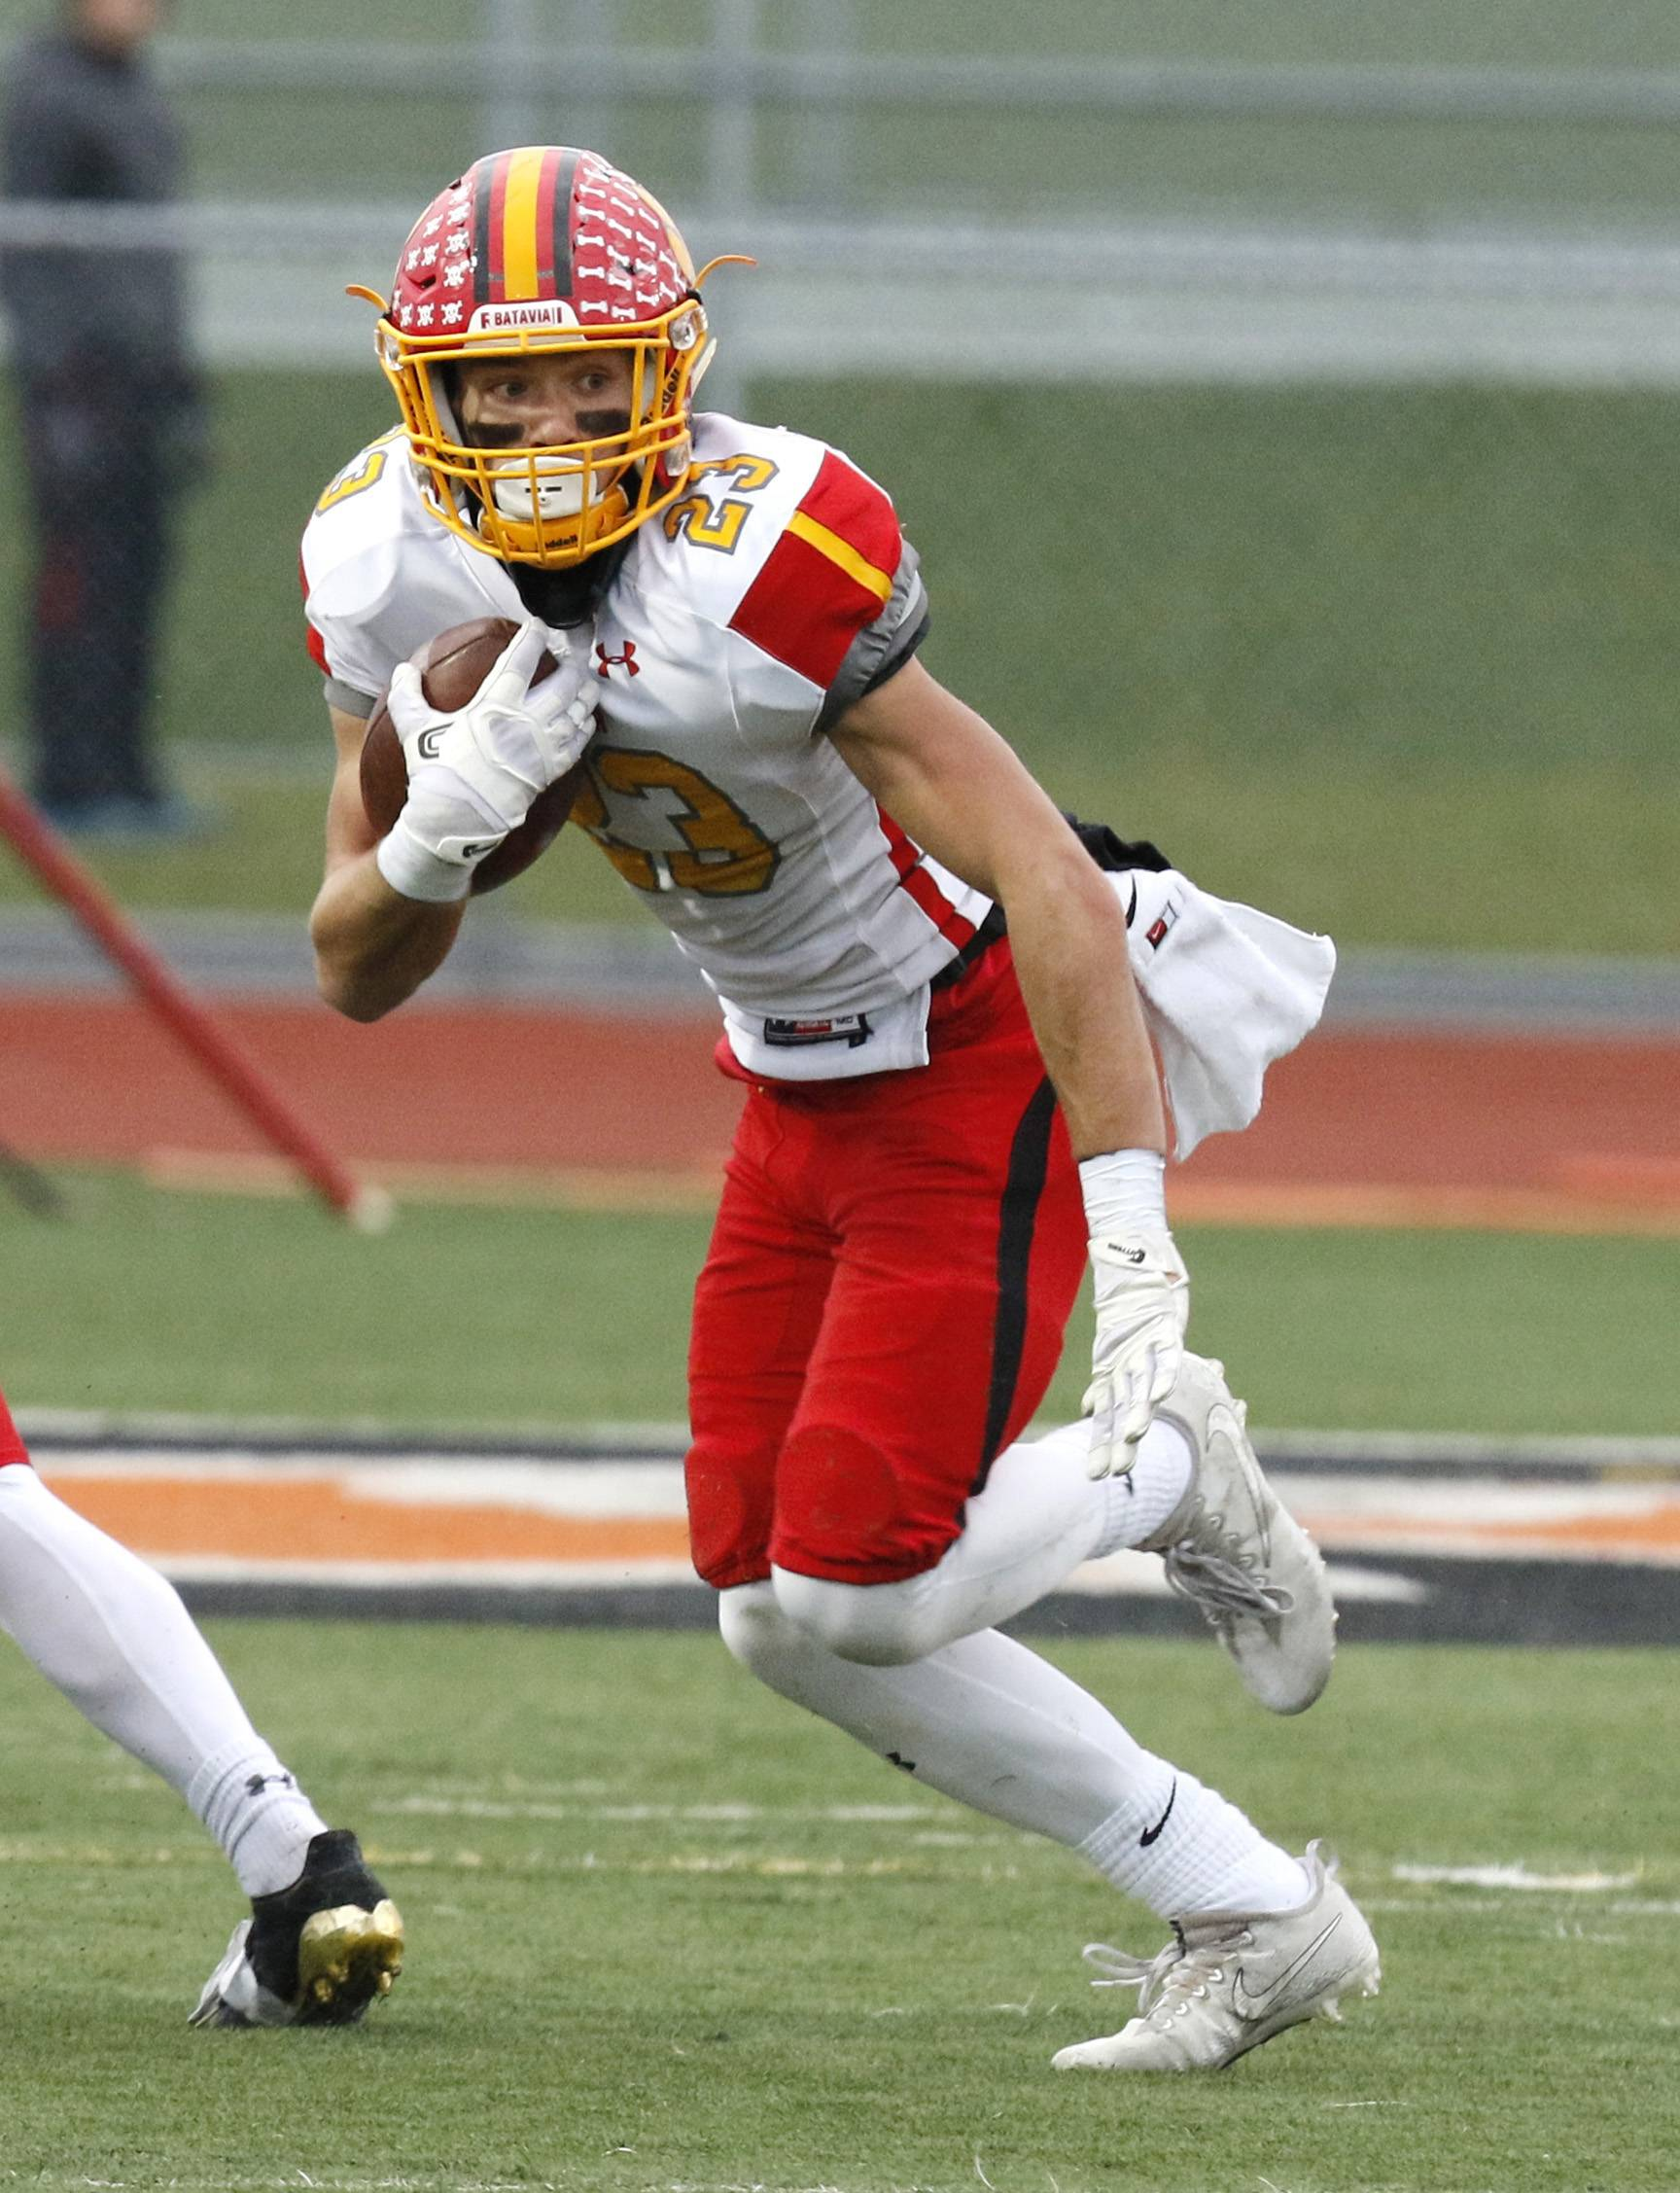 Batavia's Tommy Stuttle (23) looks for running room after his third interception of the game against Lincoln-Way West during a 20-10 win.